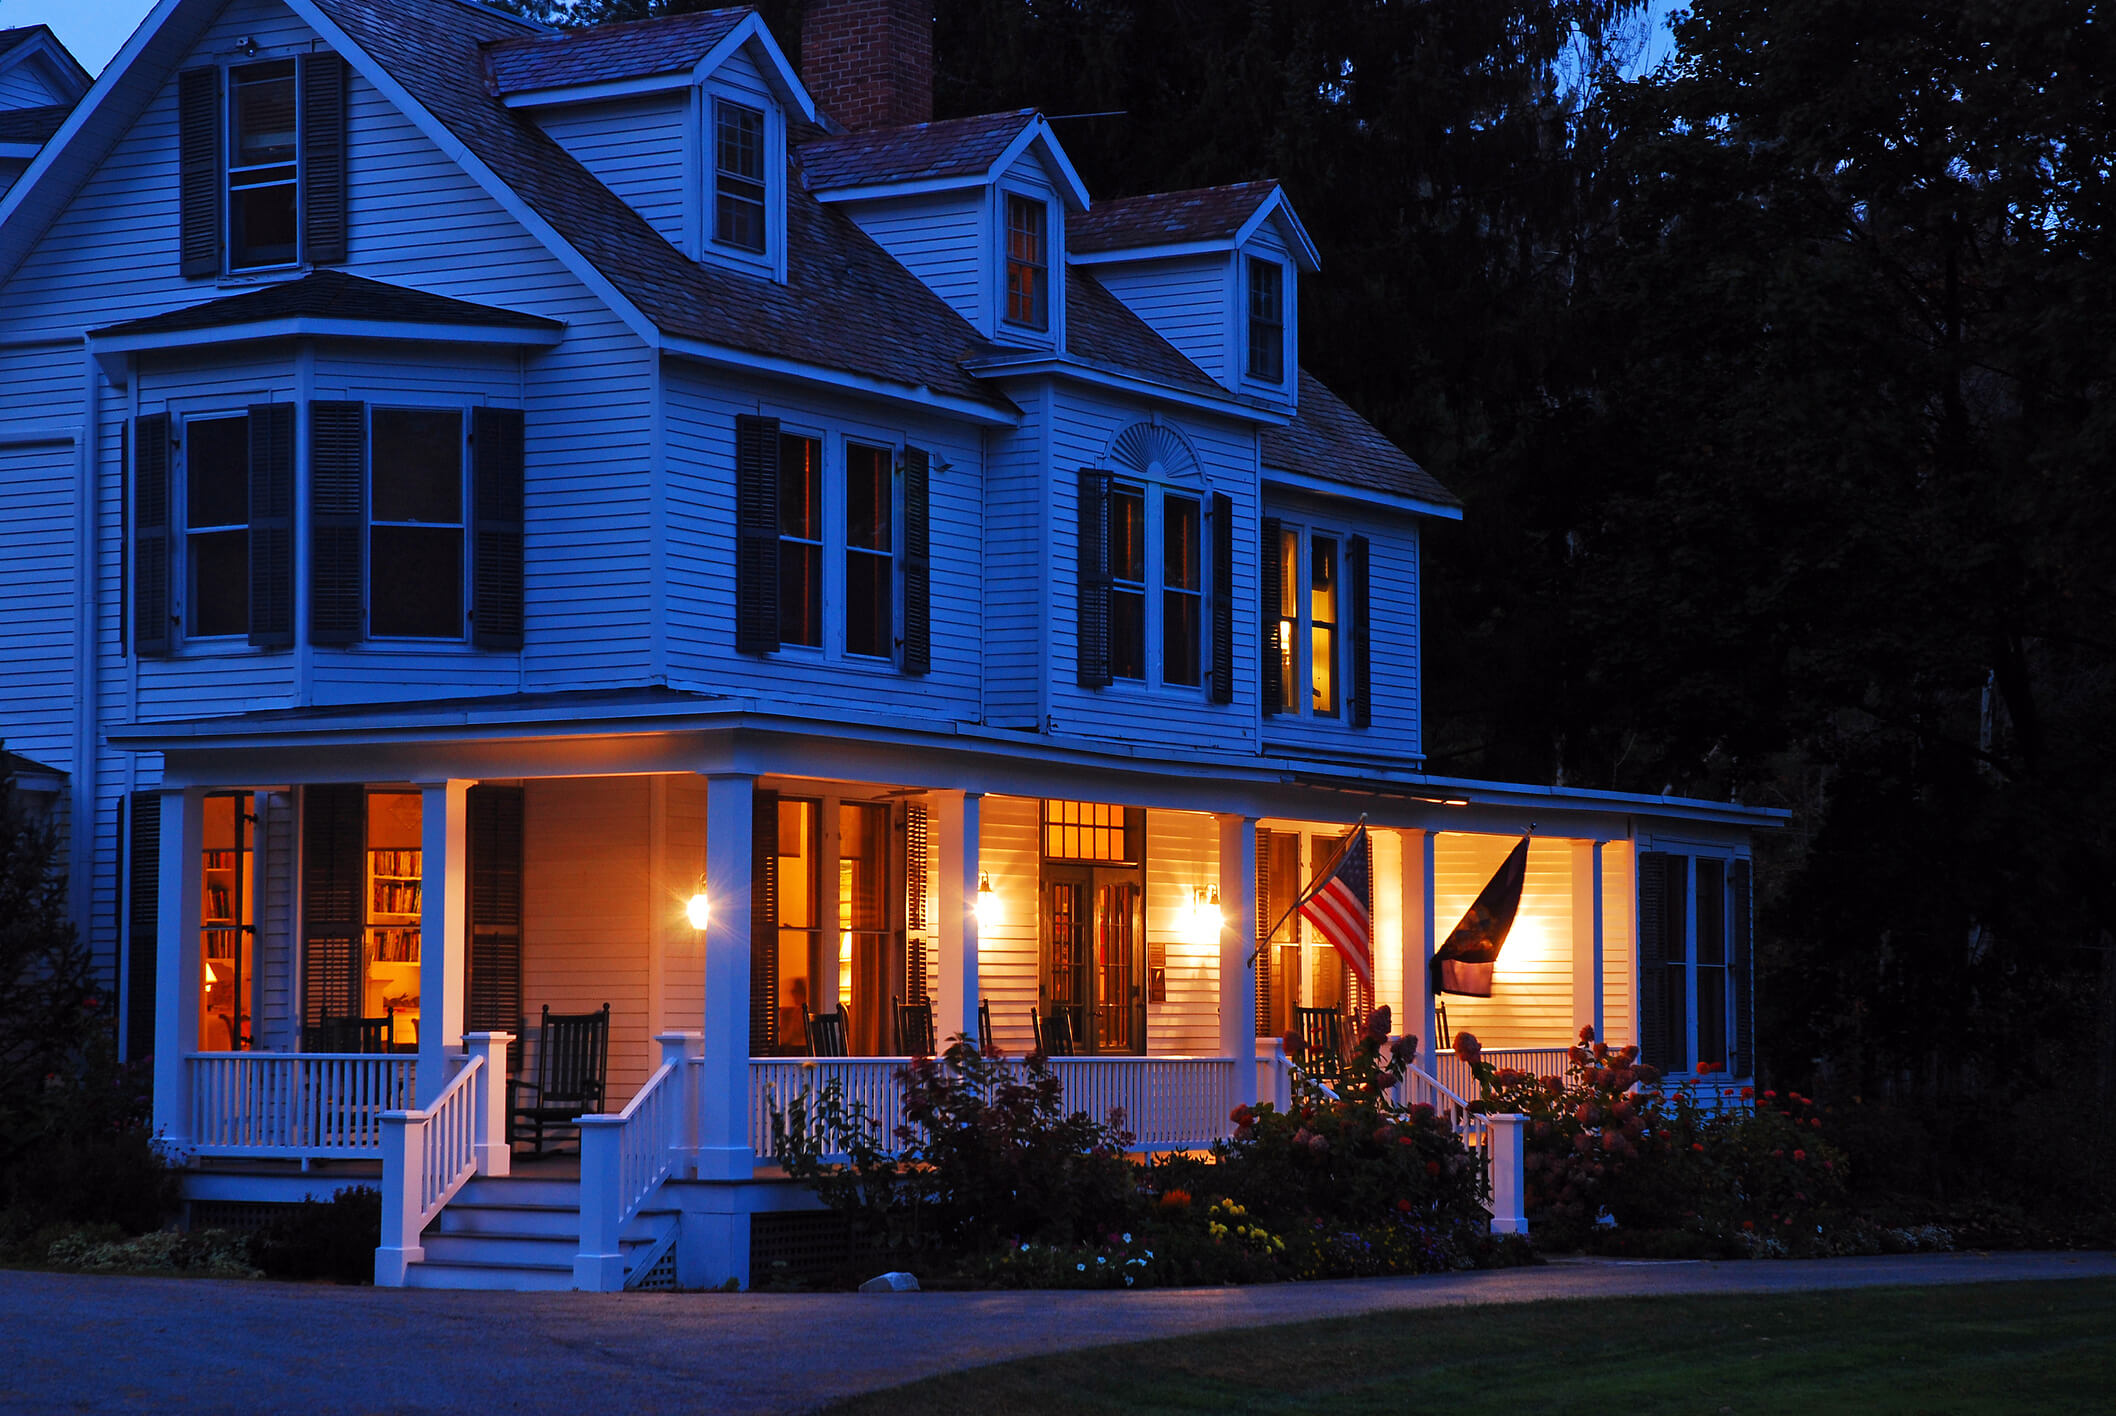 Large house at night with porch lit up